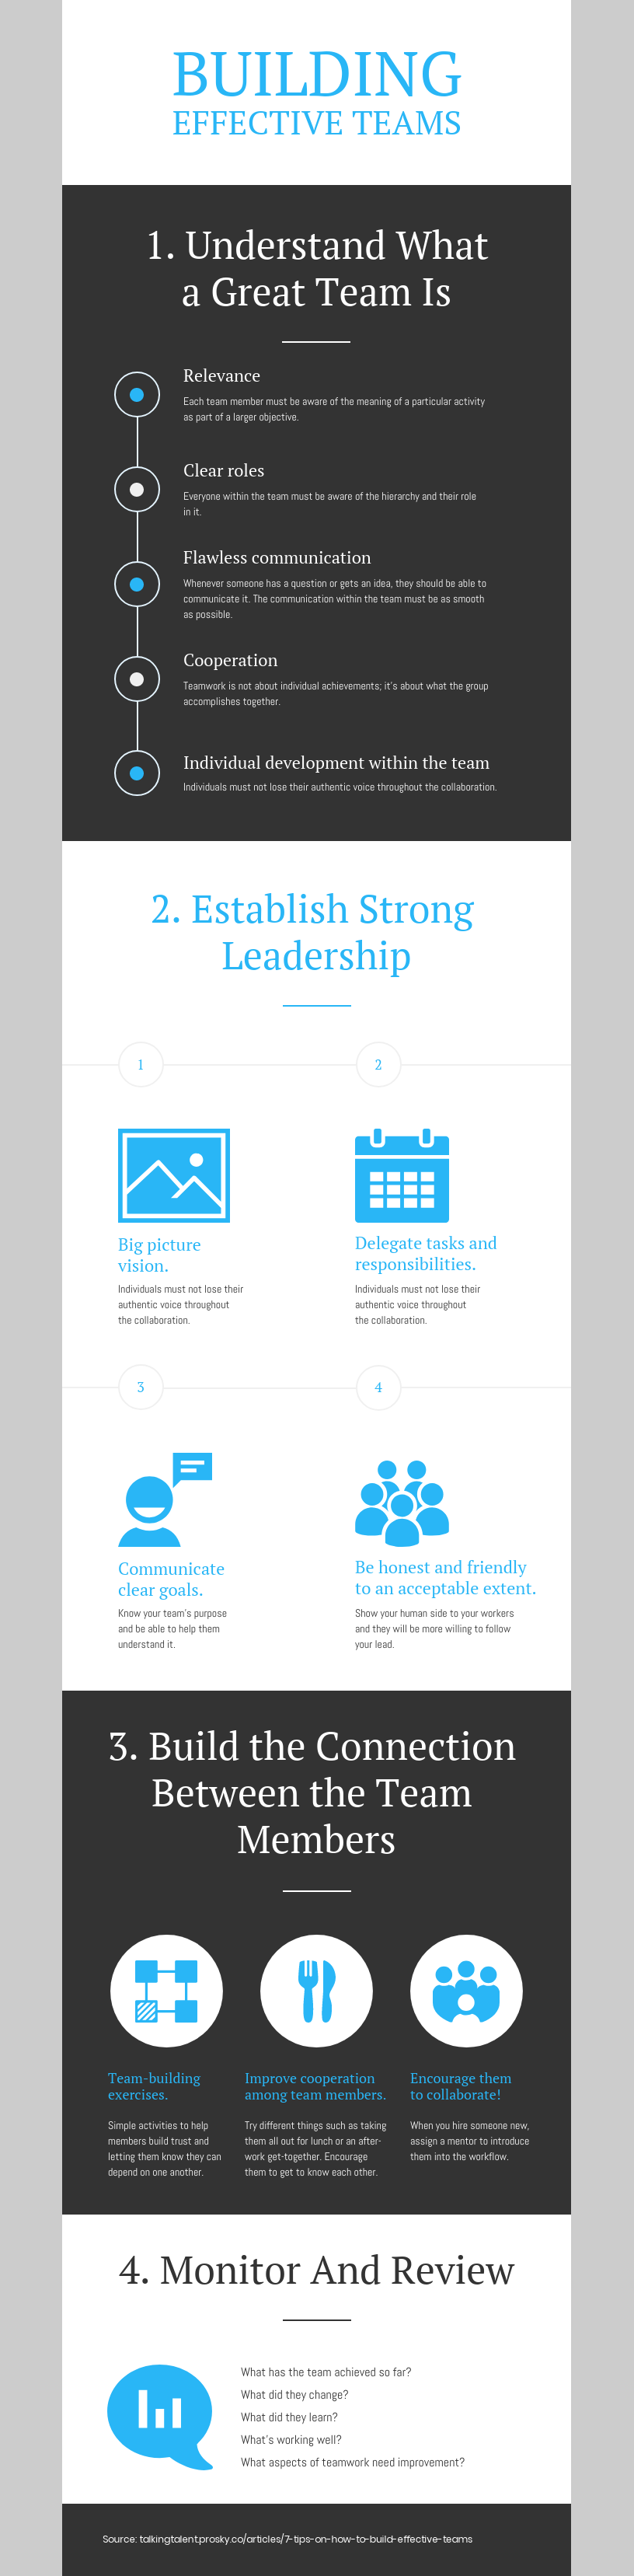 Building Effective Teams Infographic Template